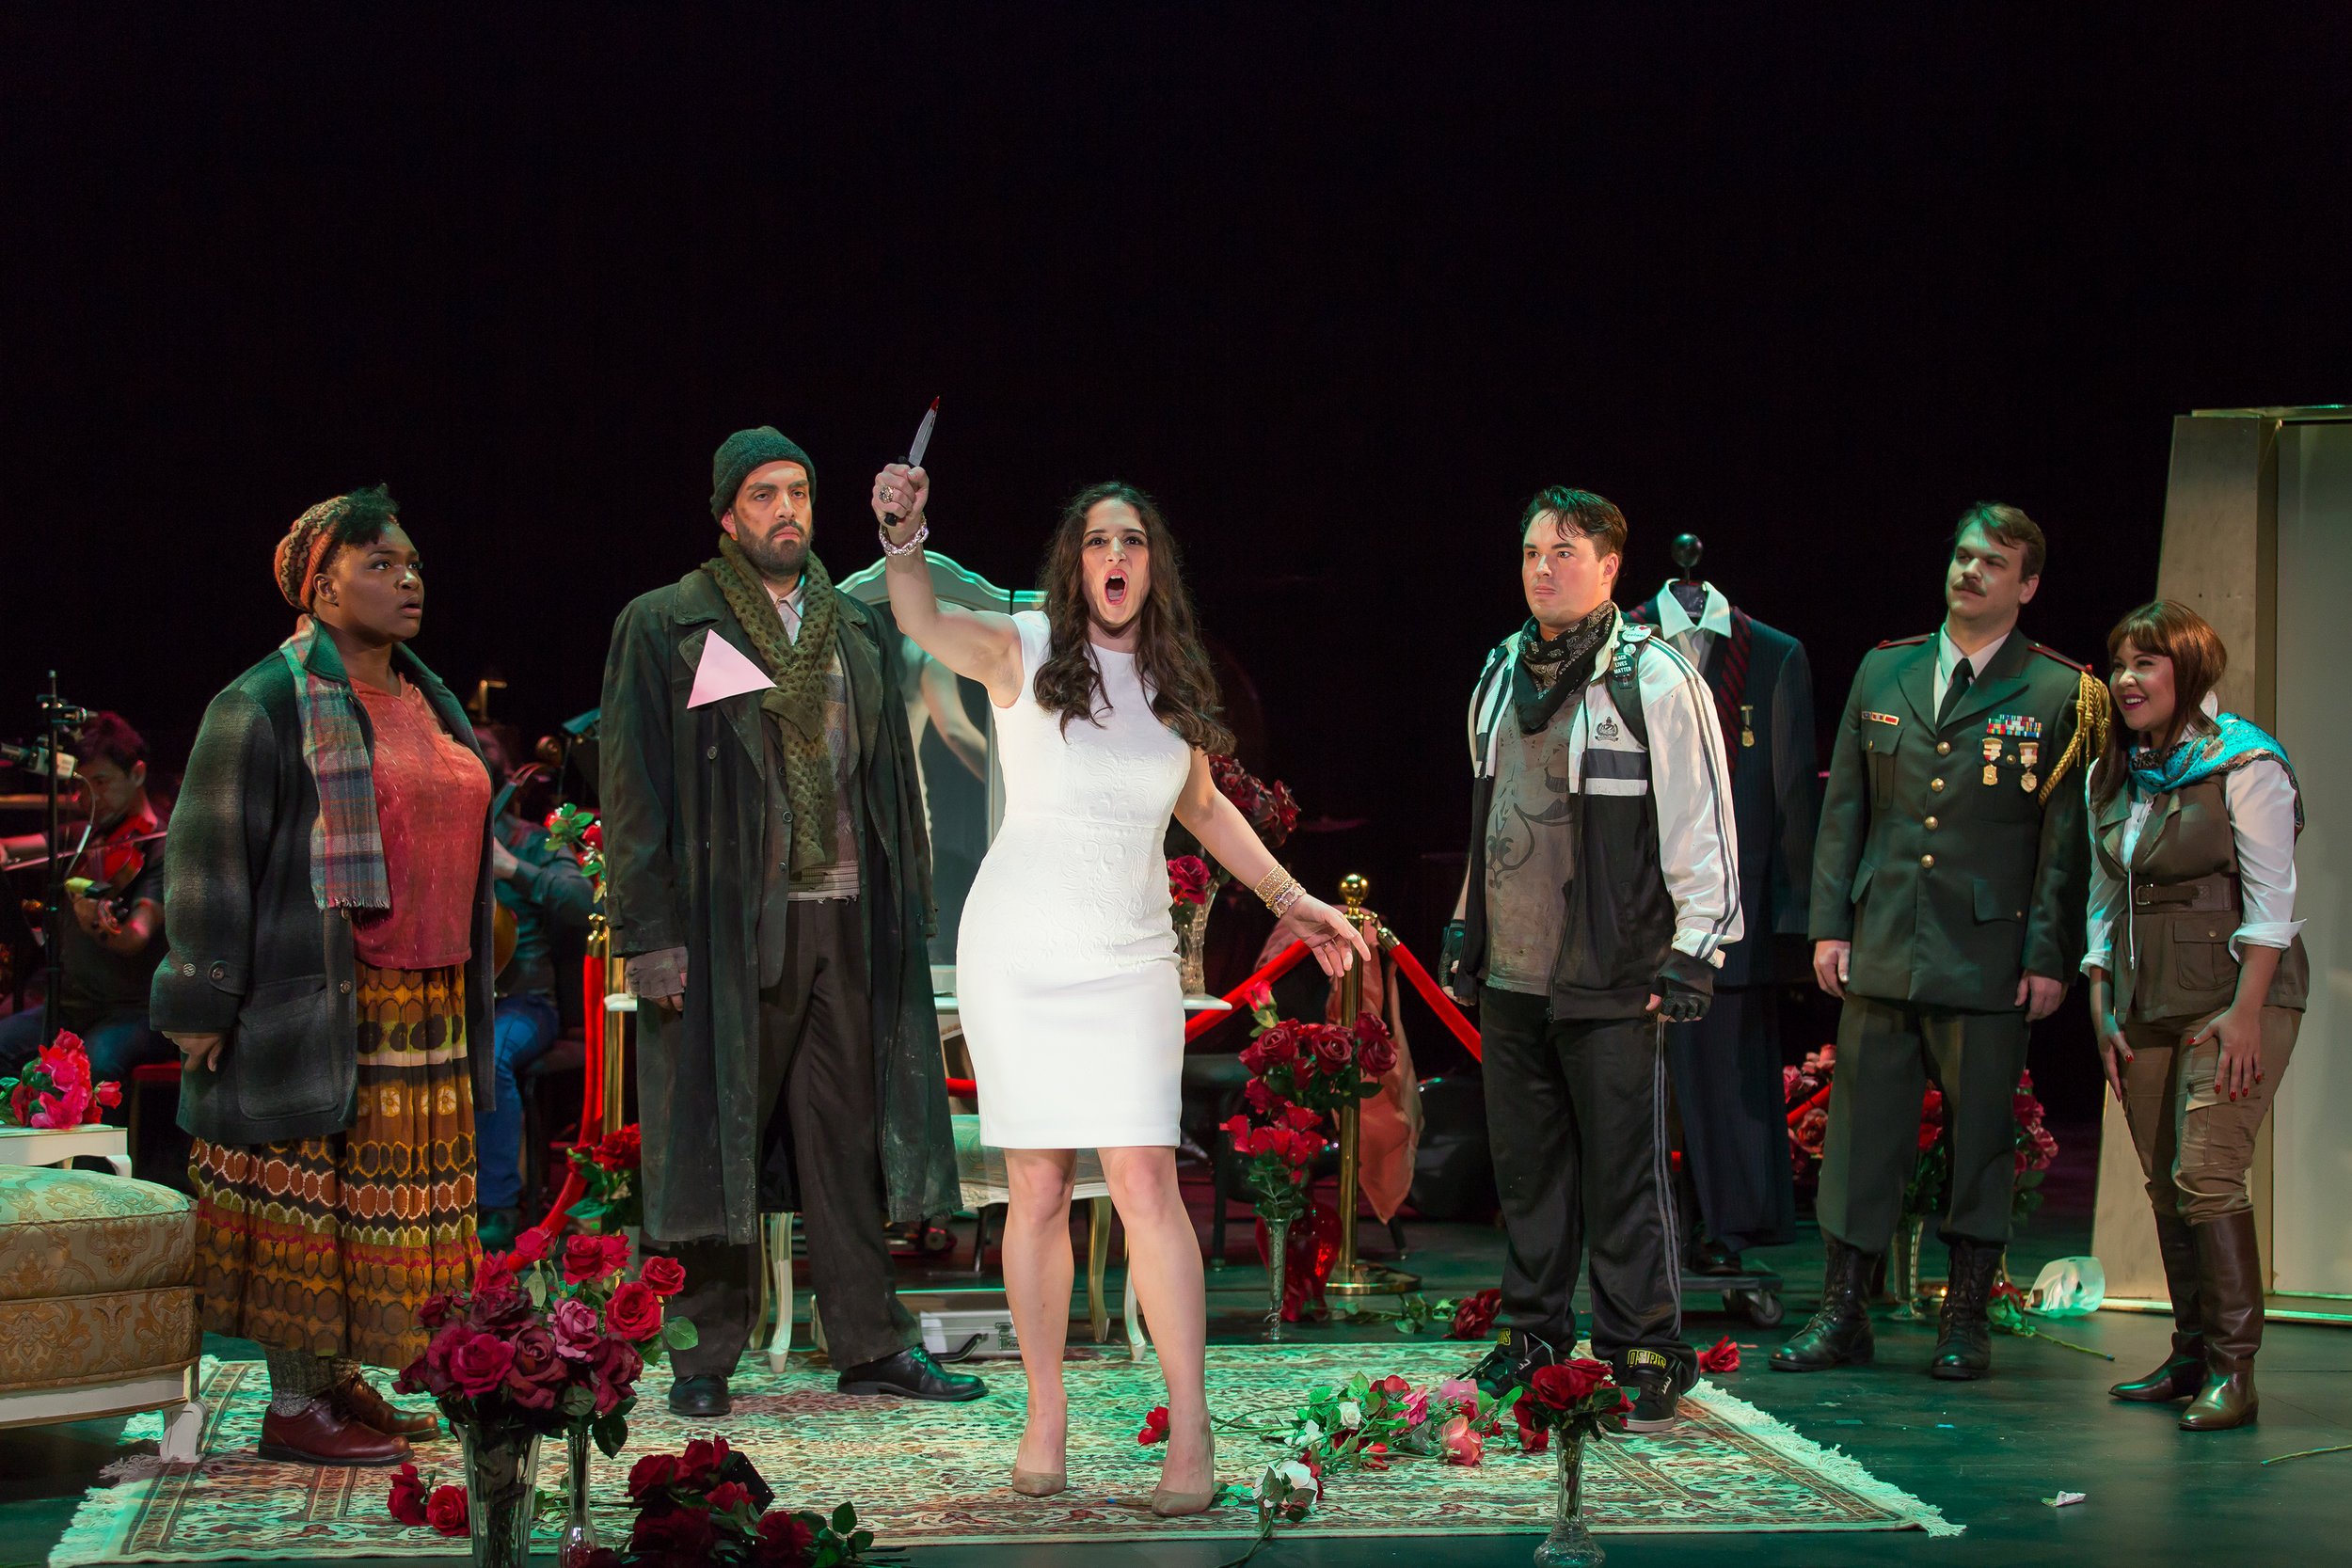 Scene from a new opera,  The Dictator's Wife : Leah Hawkins, Timothy J. Bruno, Allegra De Vita, Rexford Tester, Huntor Enoch, and Ariana Wehr; photo by Scott Suchman for Washington National Opera and courtesy of Washington National Opera.